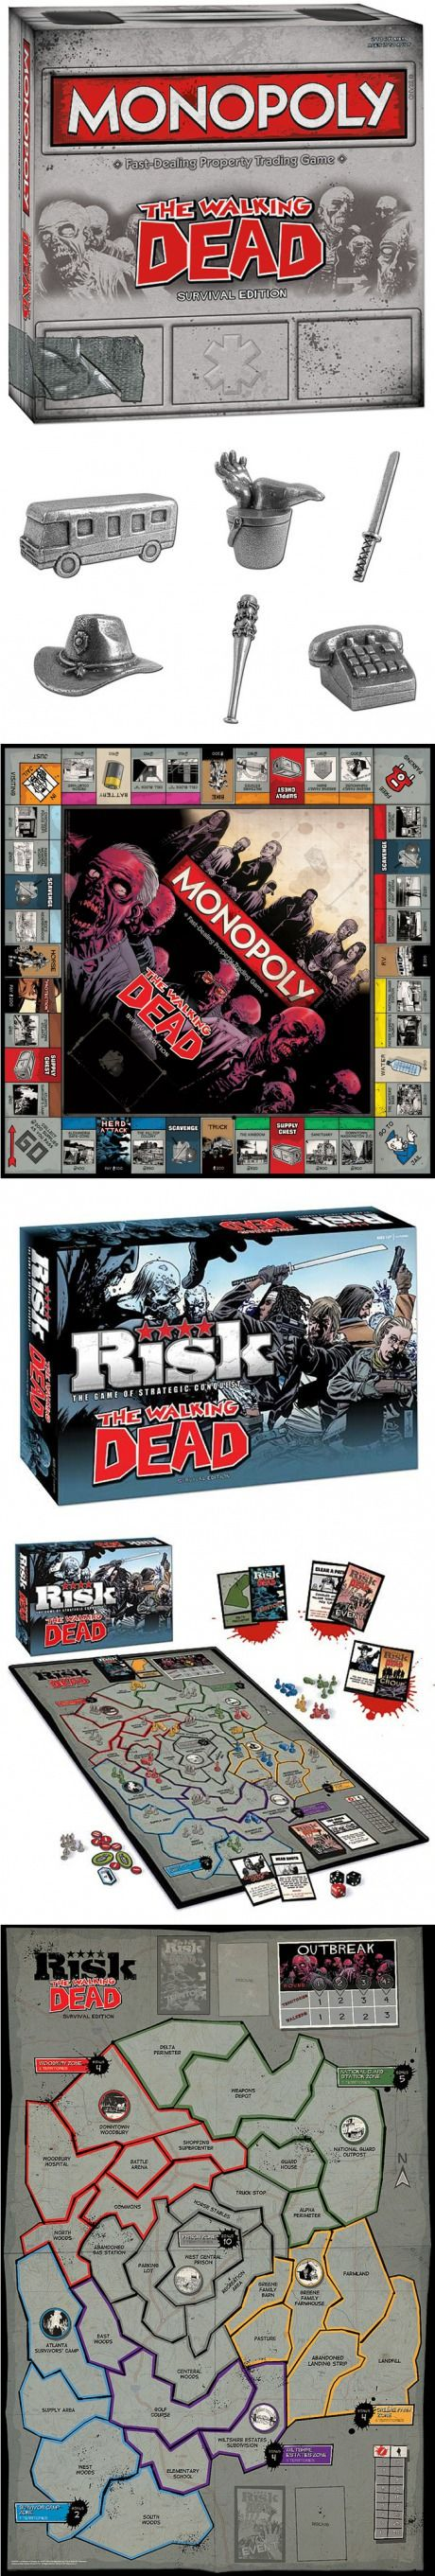 The Walking Dead Survival Edition Board Game - http://geekstumbles.com/funny/the-walking-dead-survival-edition-board-game-2/